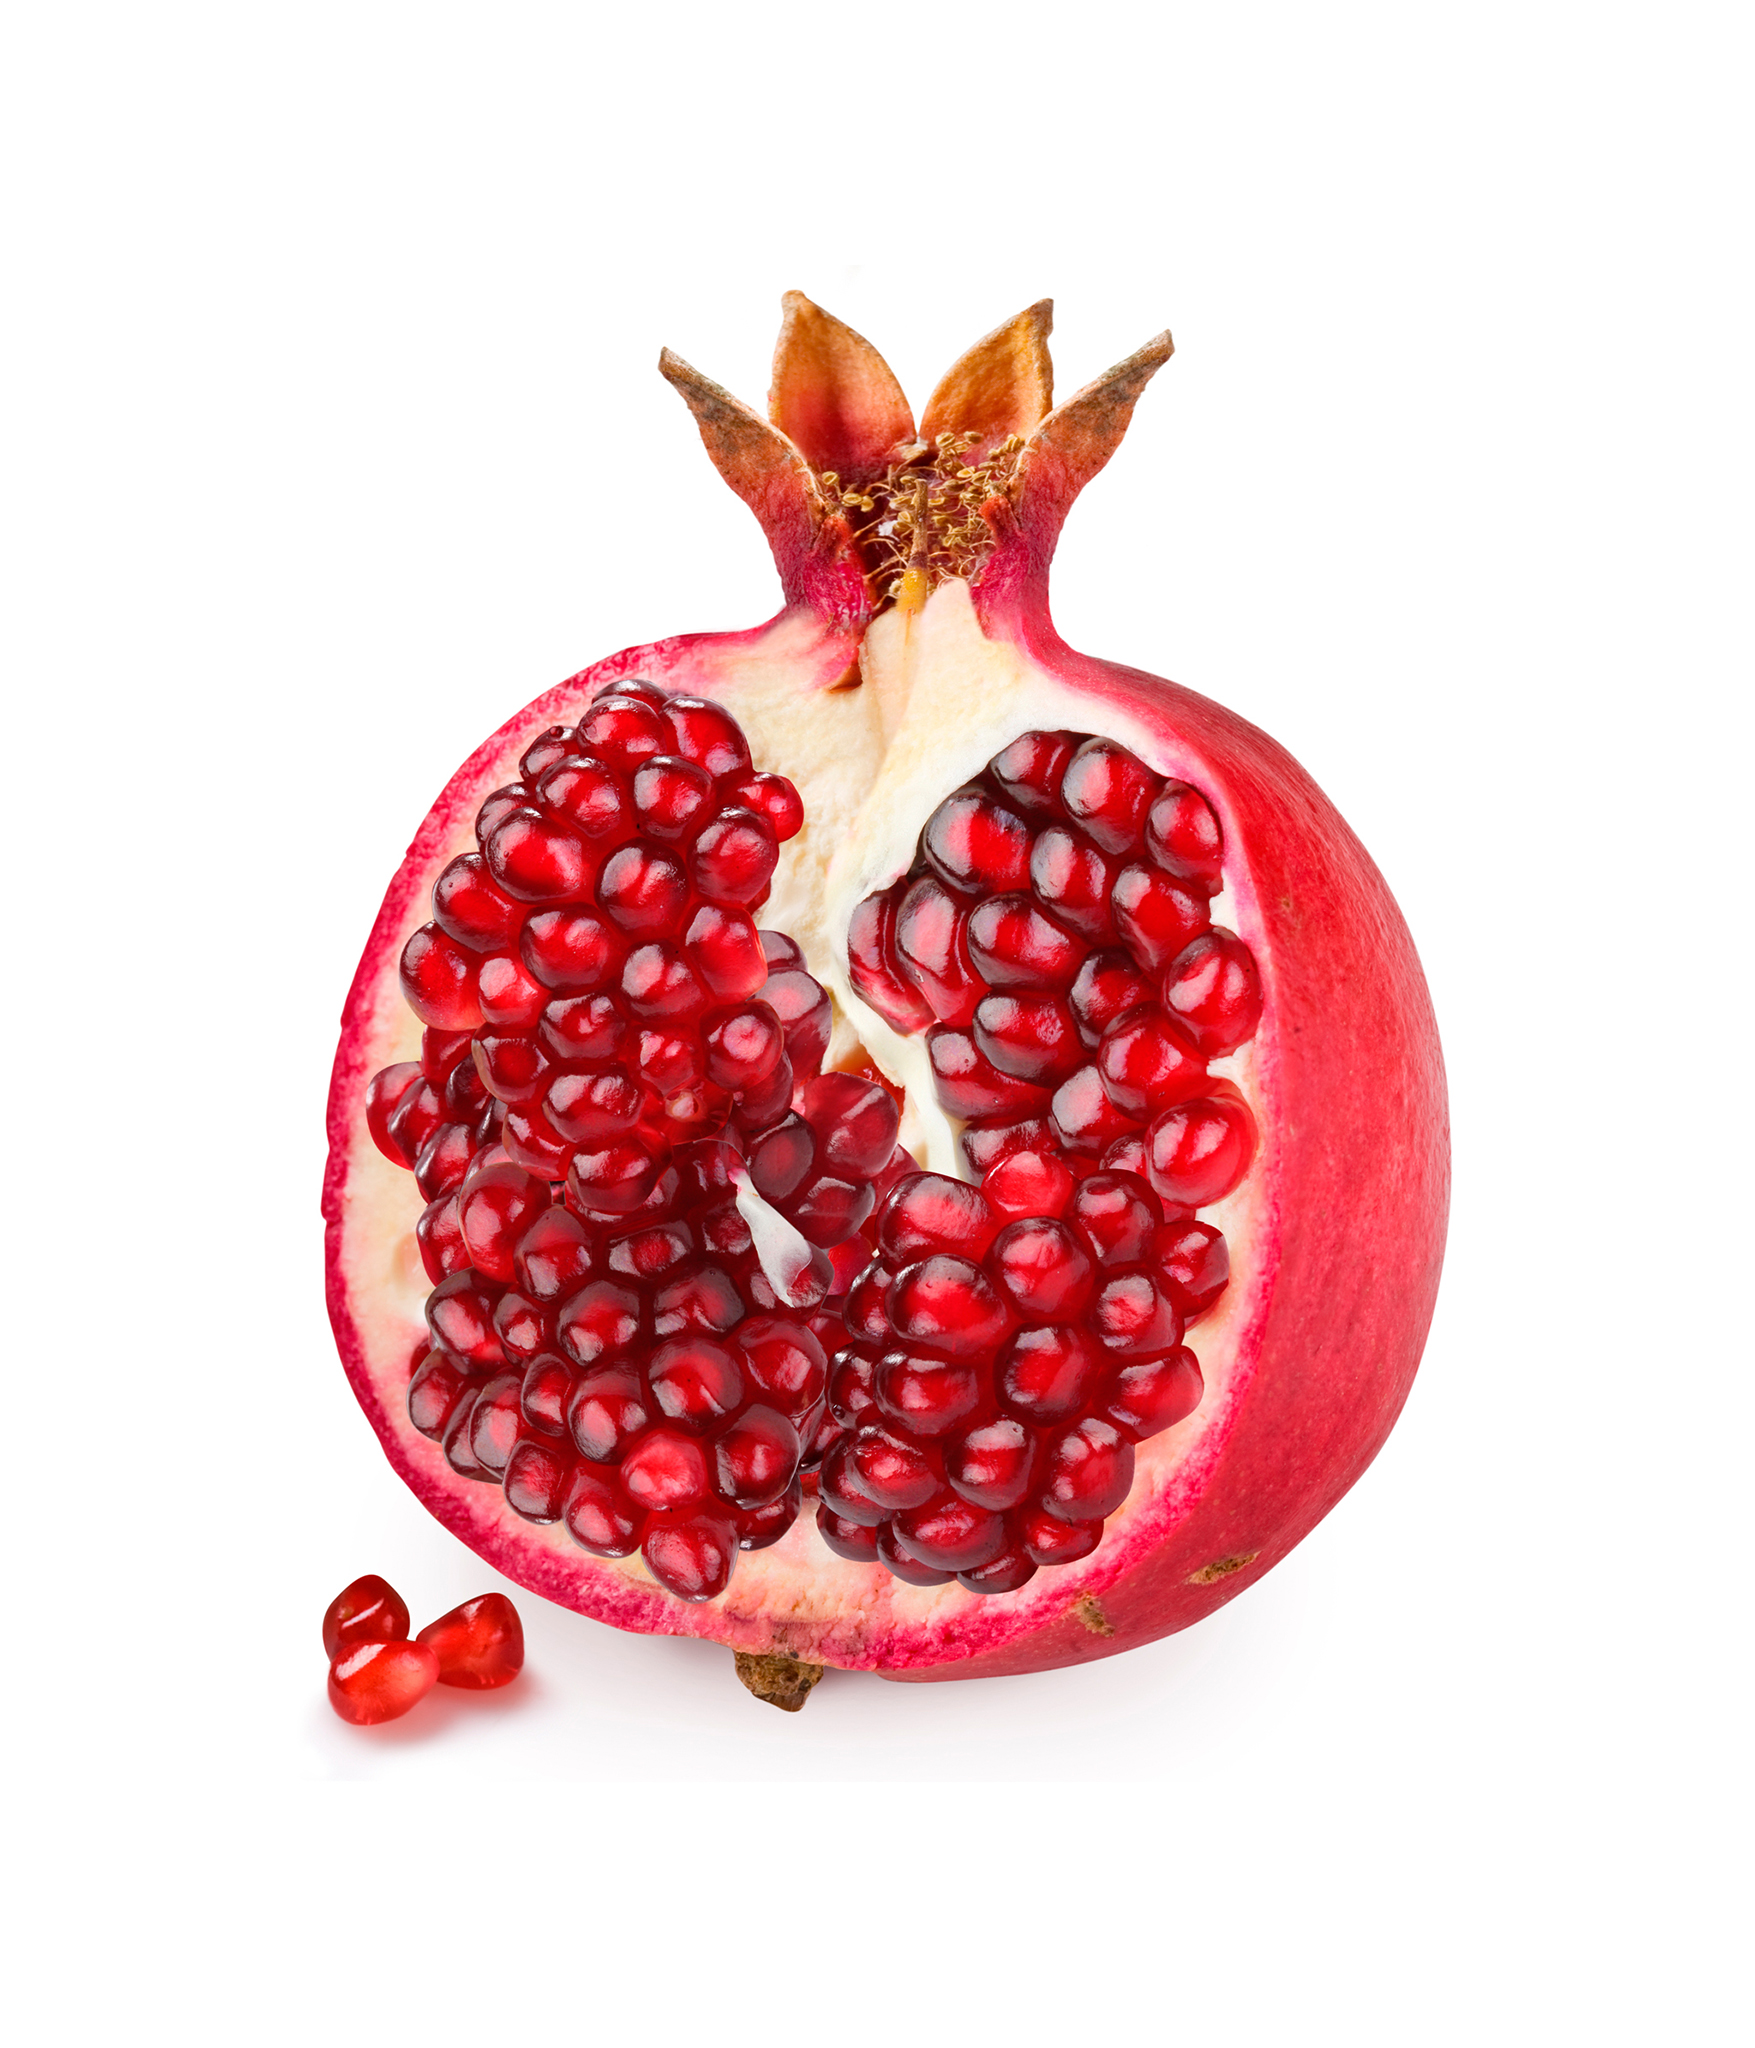 Pomegranate Red Fruit 314.55 Kb